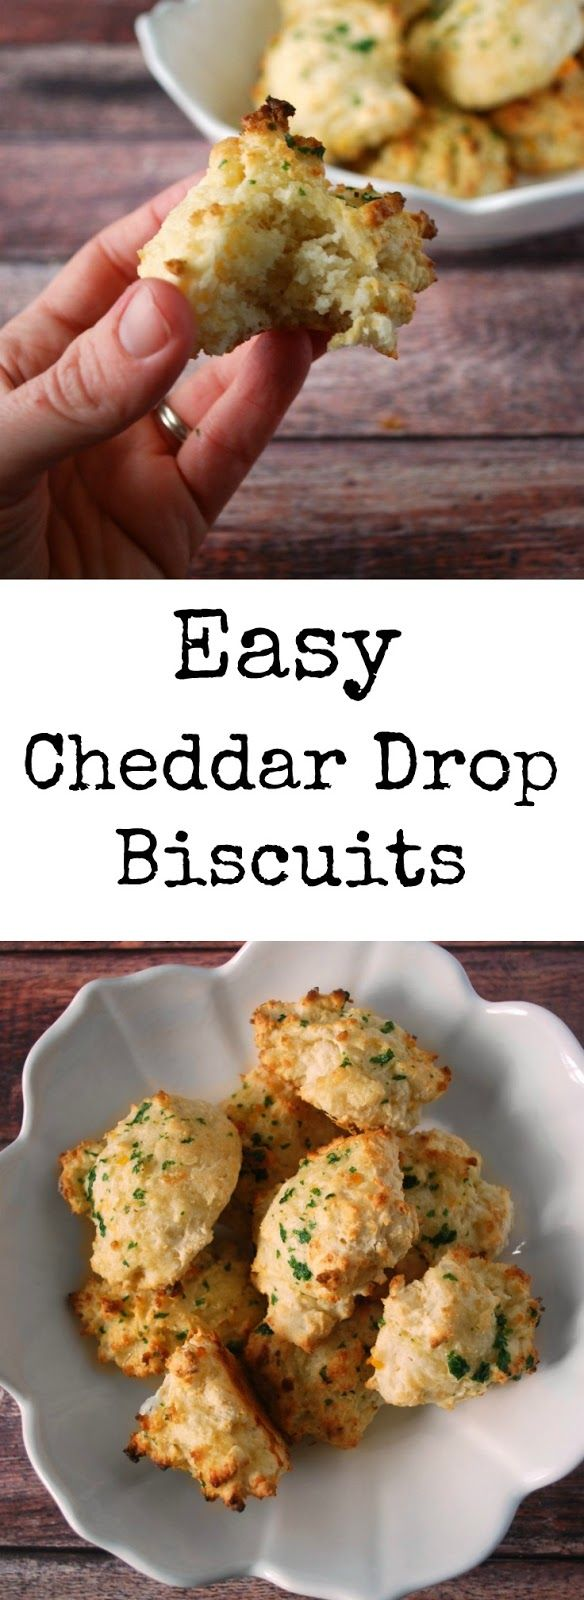 Easy Cheesy Drop Biscuits | Recipe | Cheddar, Make your ...